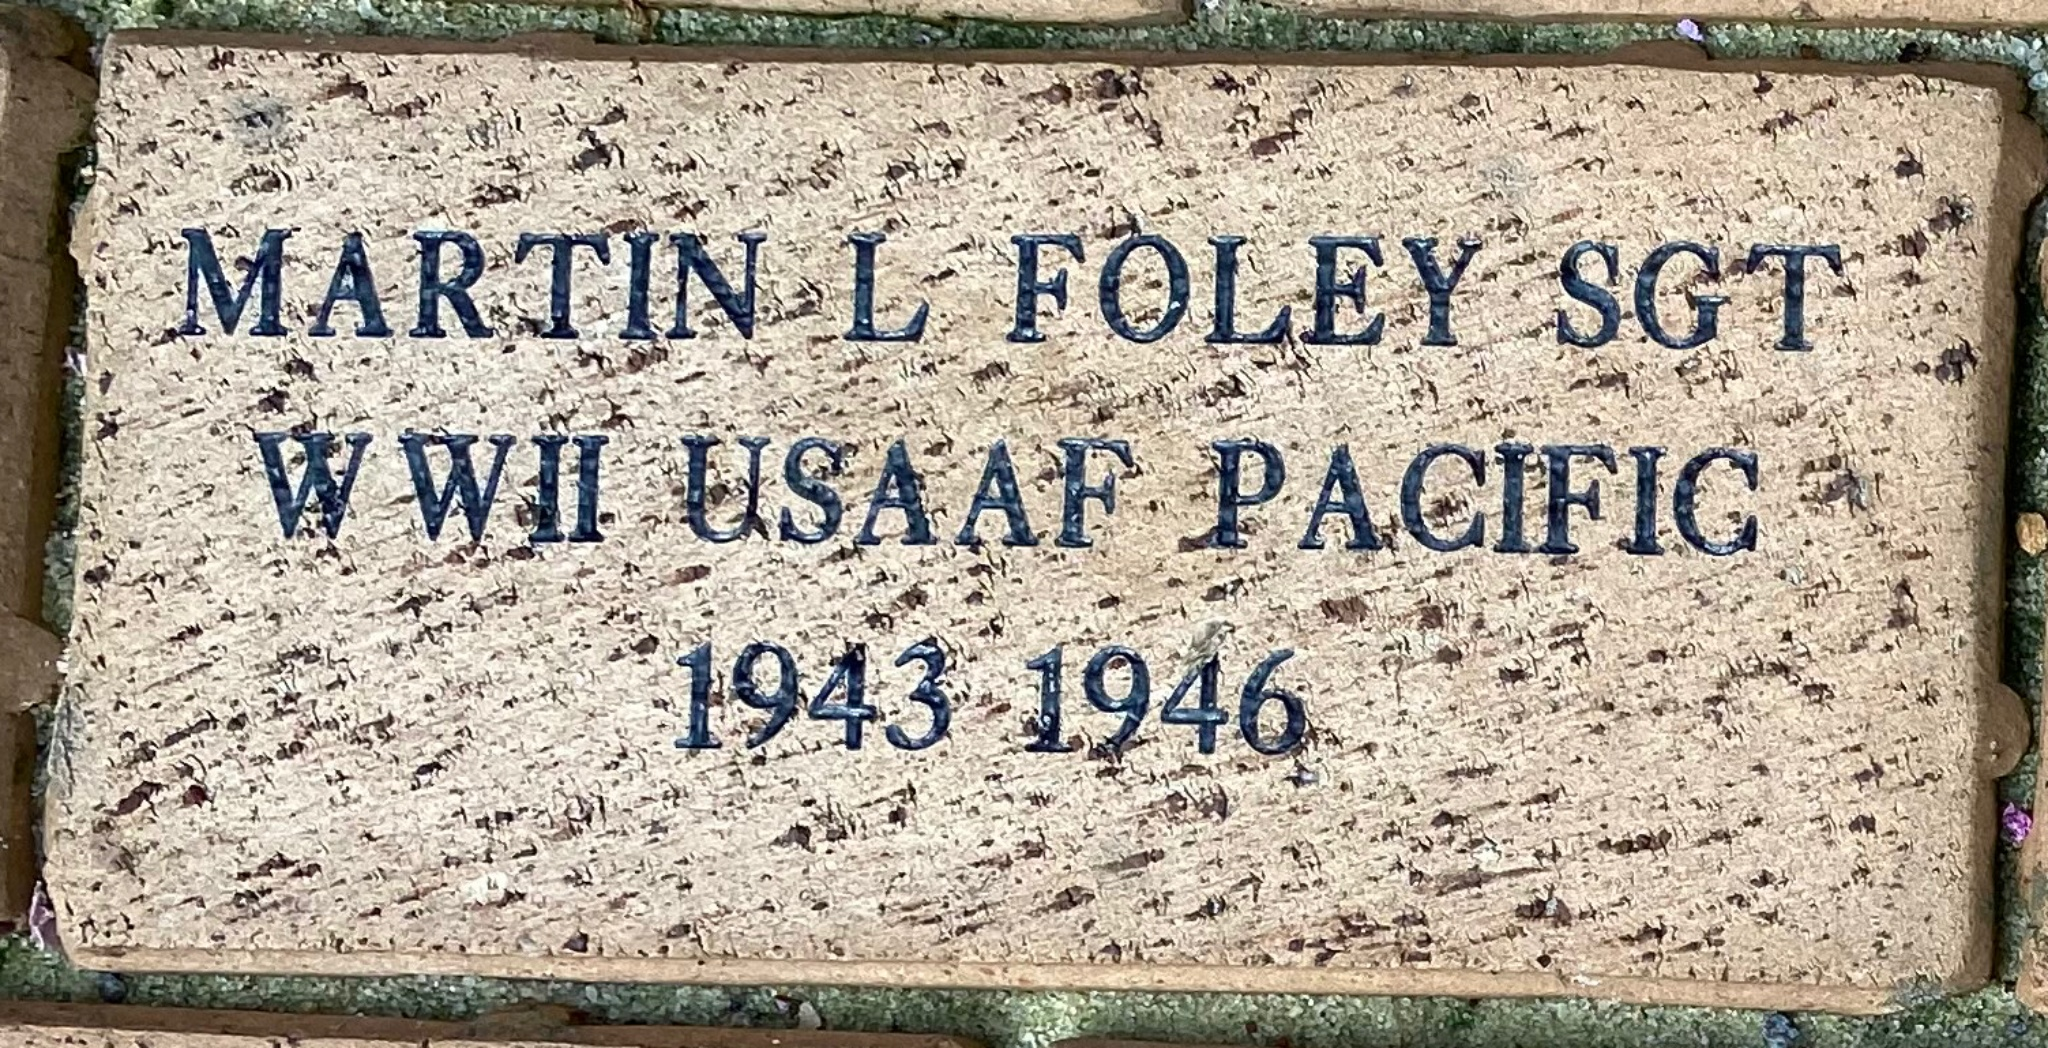 MARTIN L FOLEY SGT WWII USAAF PACIFIC 1943-1946